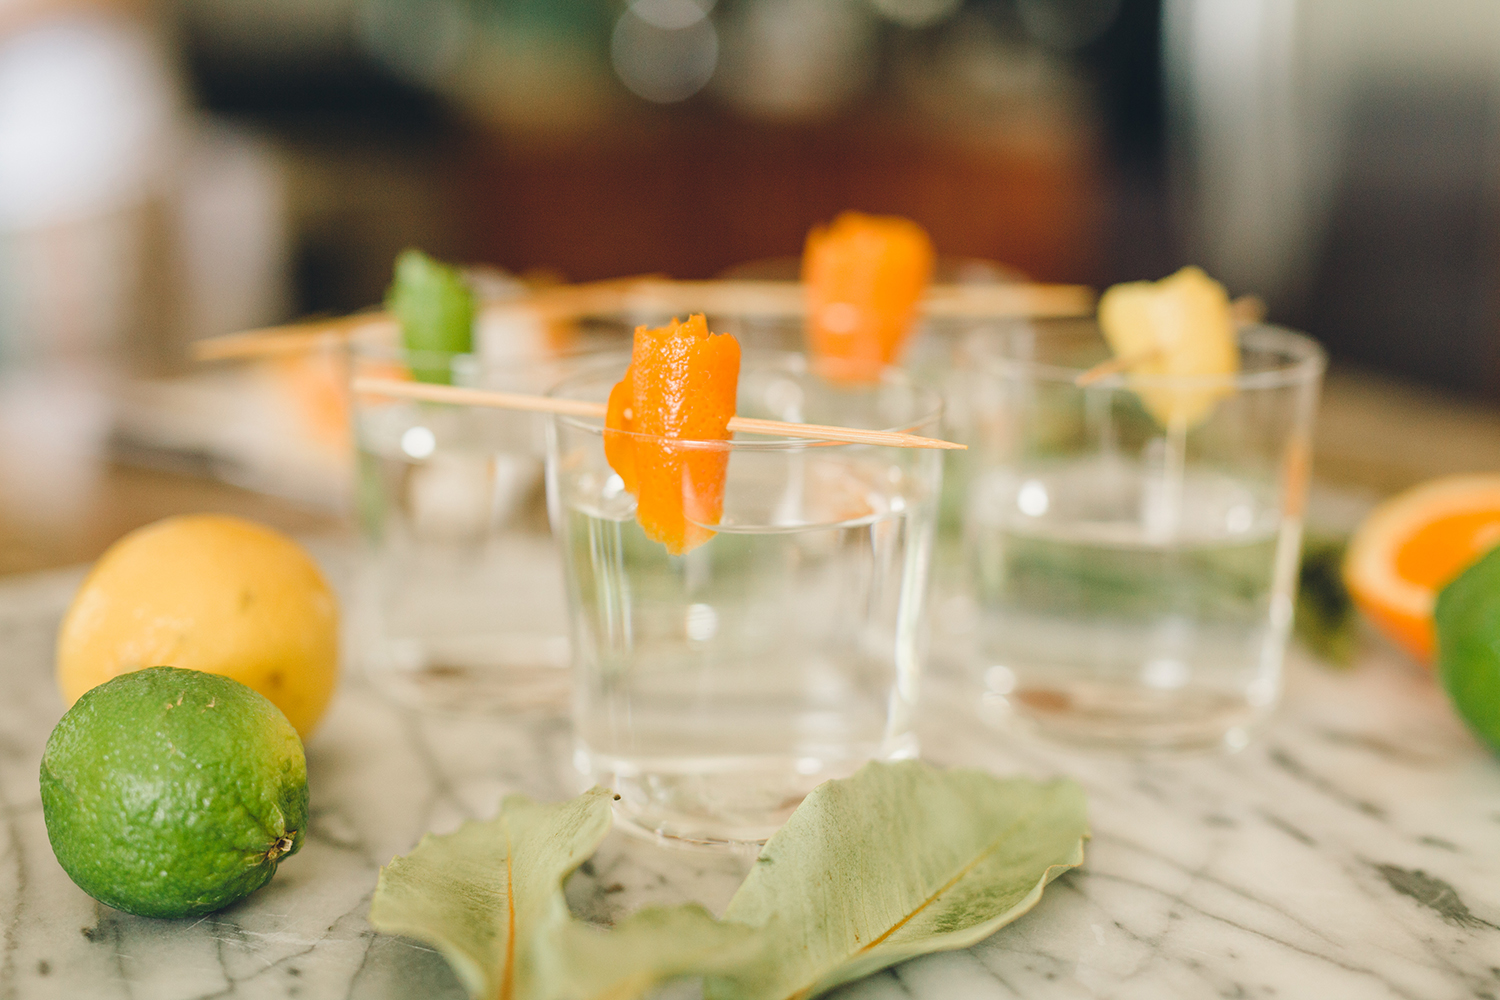 Prep your cocktail glasses ahead of parties with this simple garnish | A Fabulous Fete